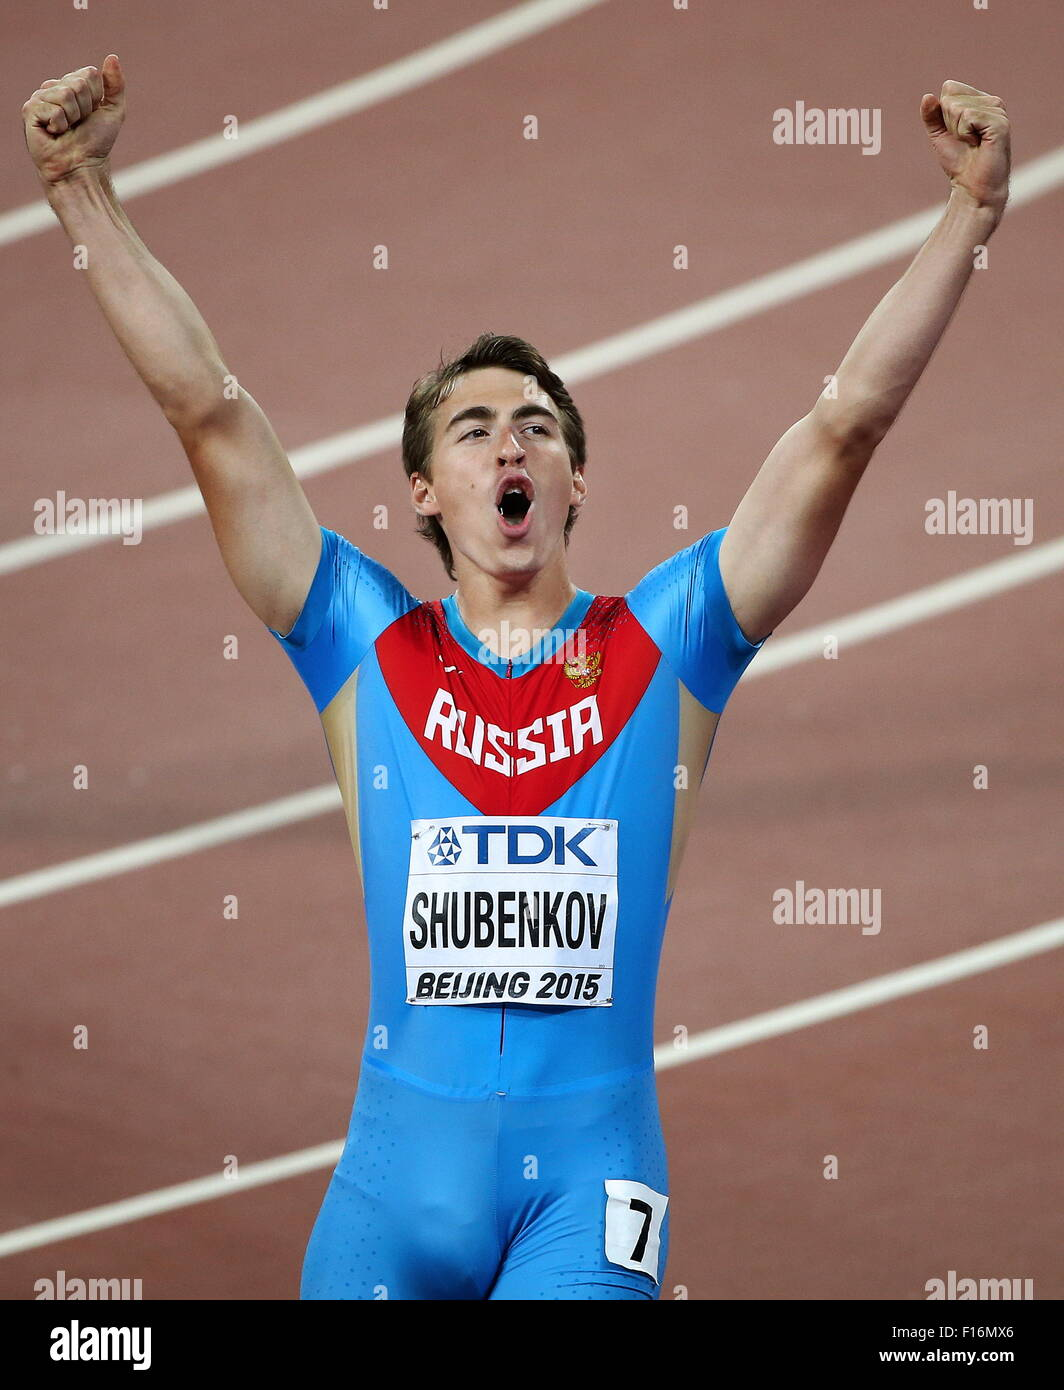 Russia s Sergey Shubenkov celebrates winning a gold medal in the men s 110m  hurdles final on Day 7 of the 15th IAAF World Championships in Athletics at  ... 2f1aa46fd6343